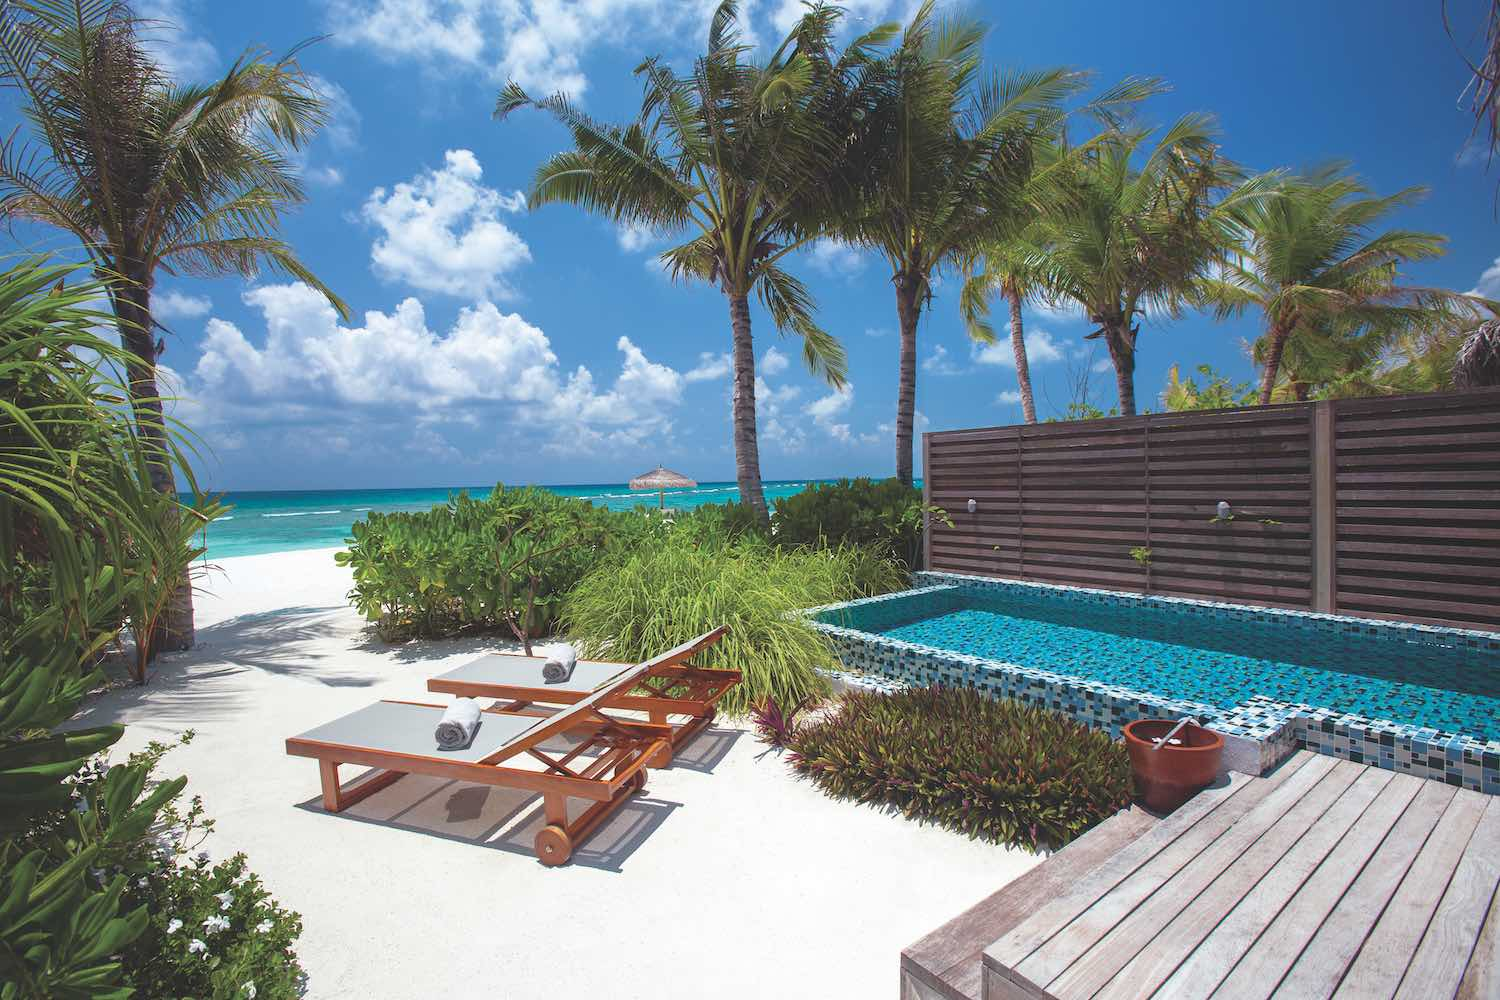 maldives-oblu-select-at-sangeli-deluxe-beach-villa-with-pool-4-holiday-honeymoon-vacation-invite-to-paradise.jpg